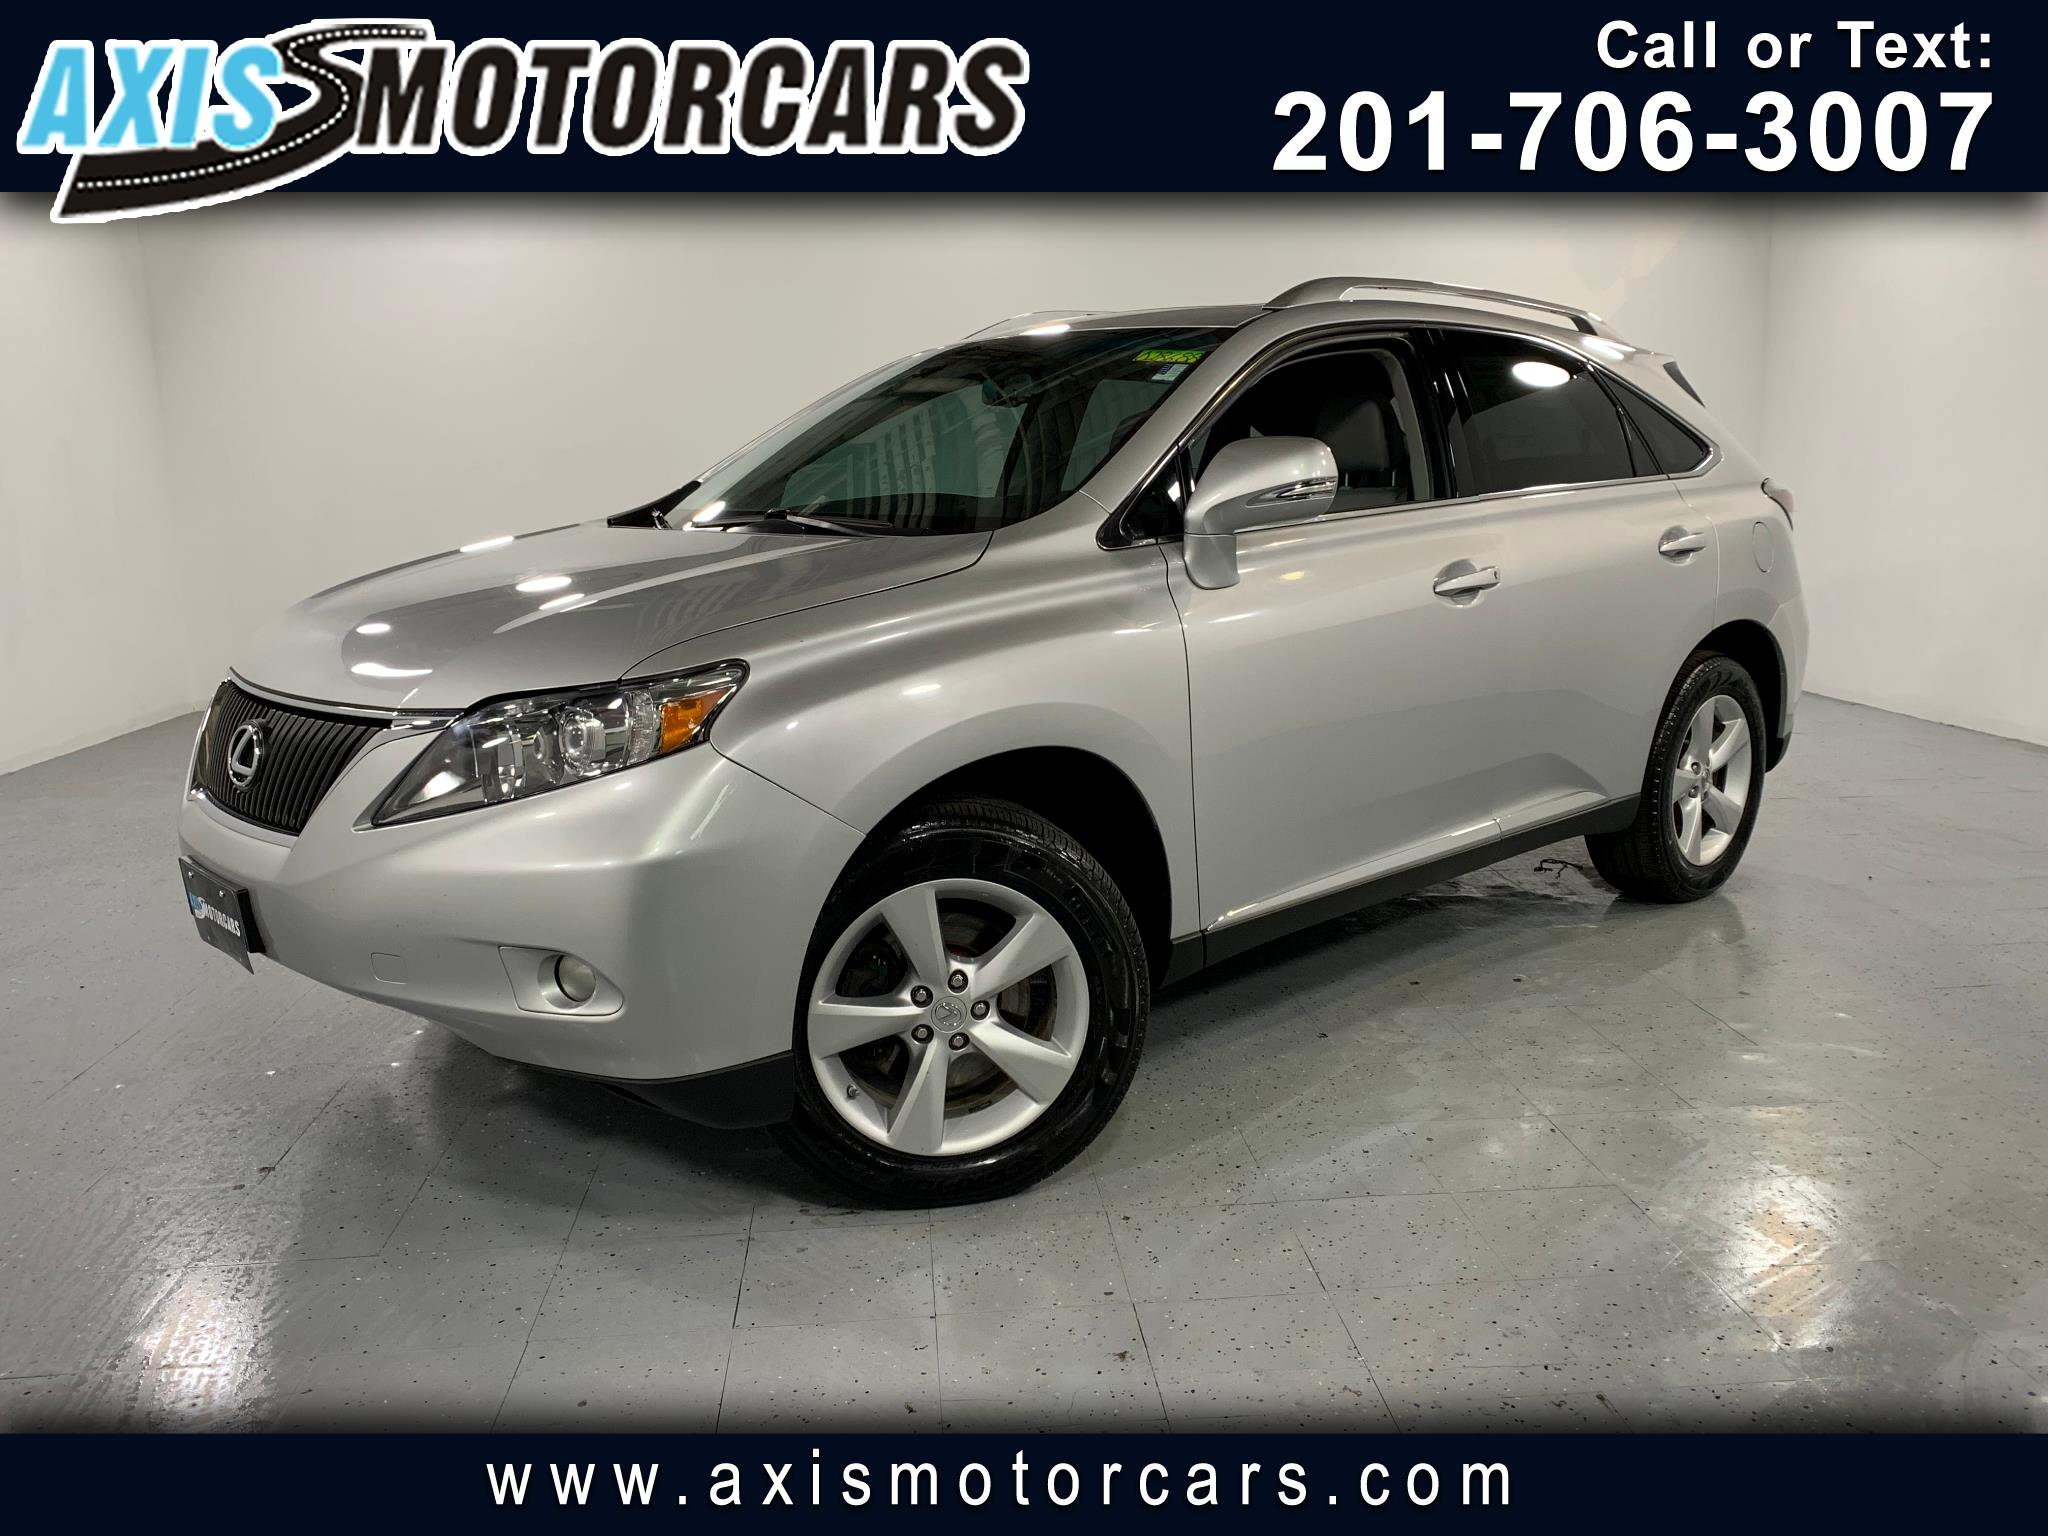 2010 Lexus RX 350 w/Bakup Camera Sunroof Leather